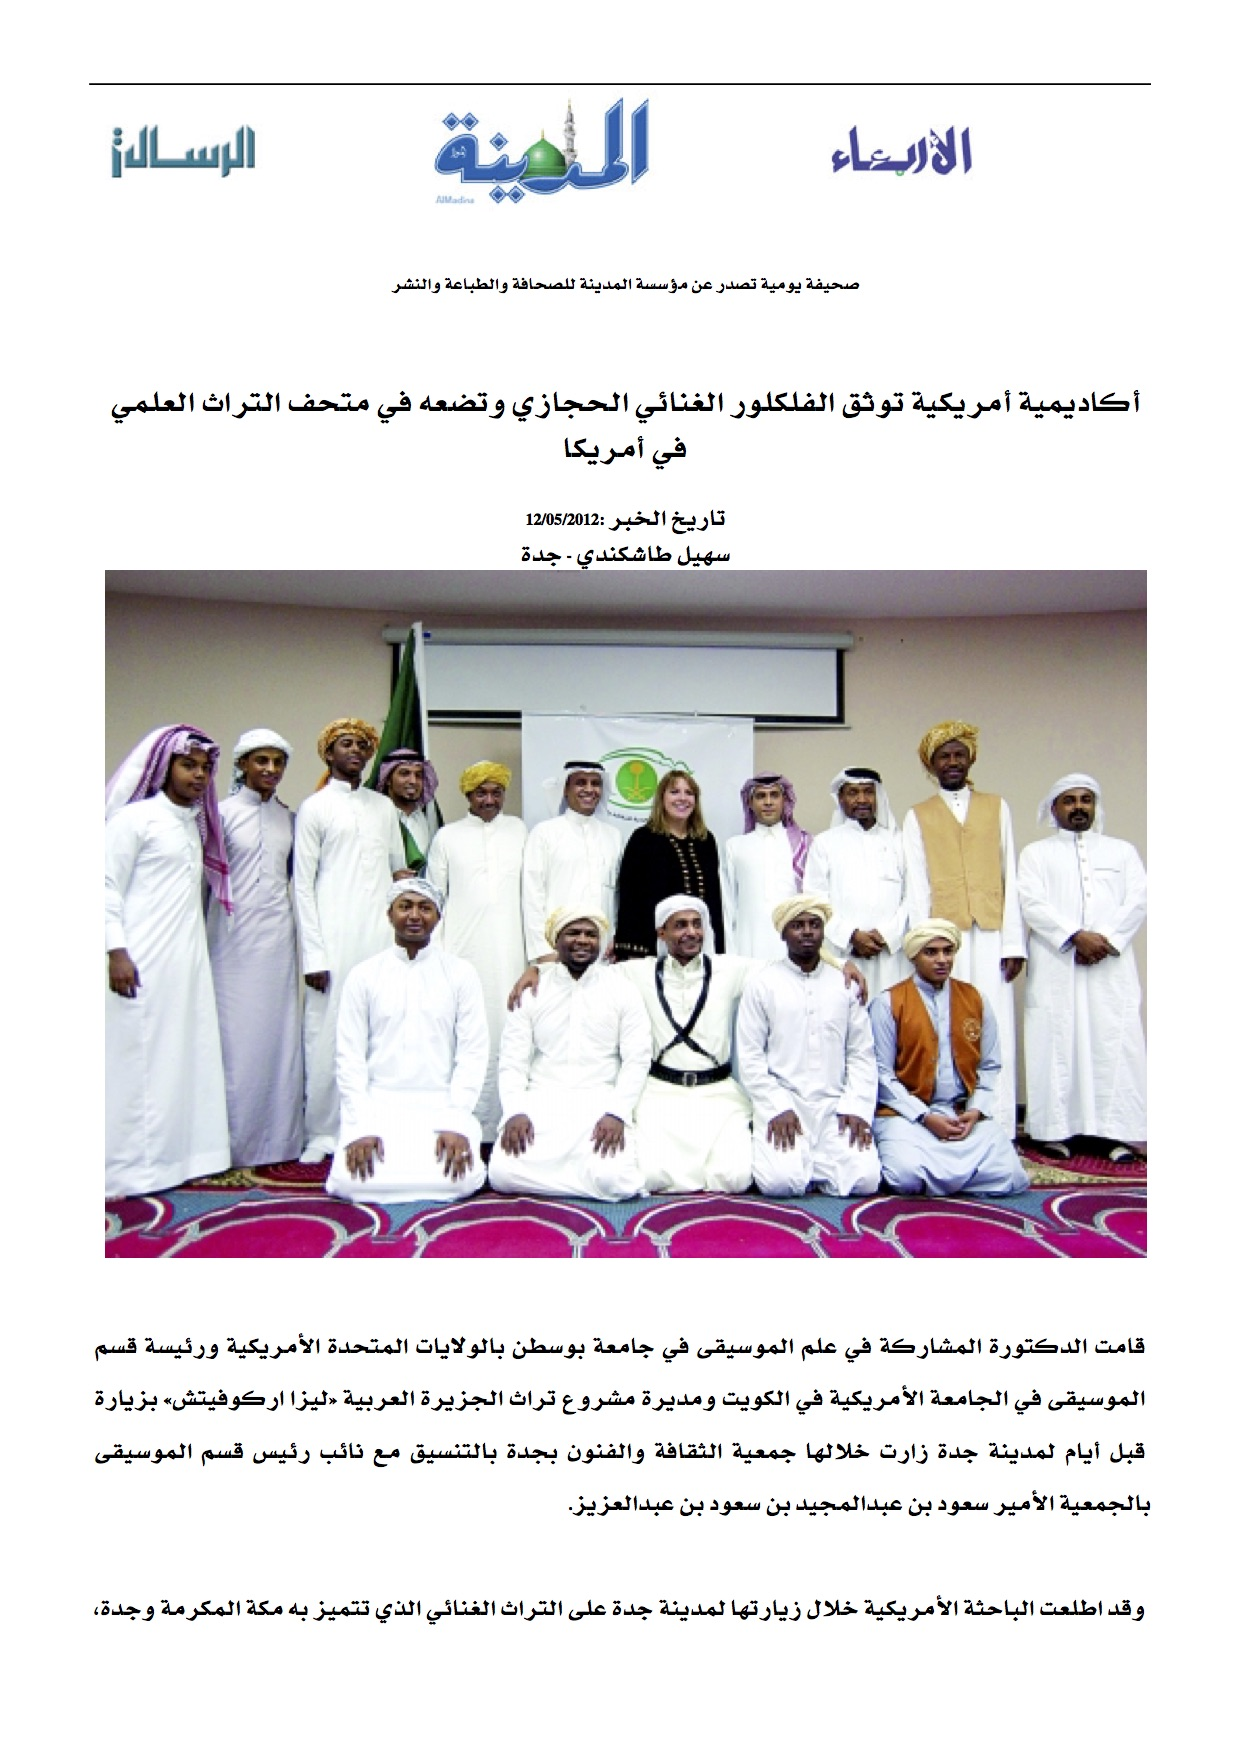 Medinah Saudi Arabia, News